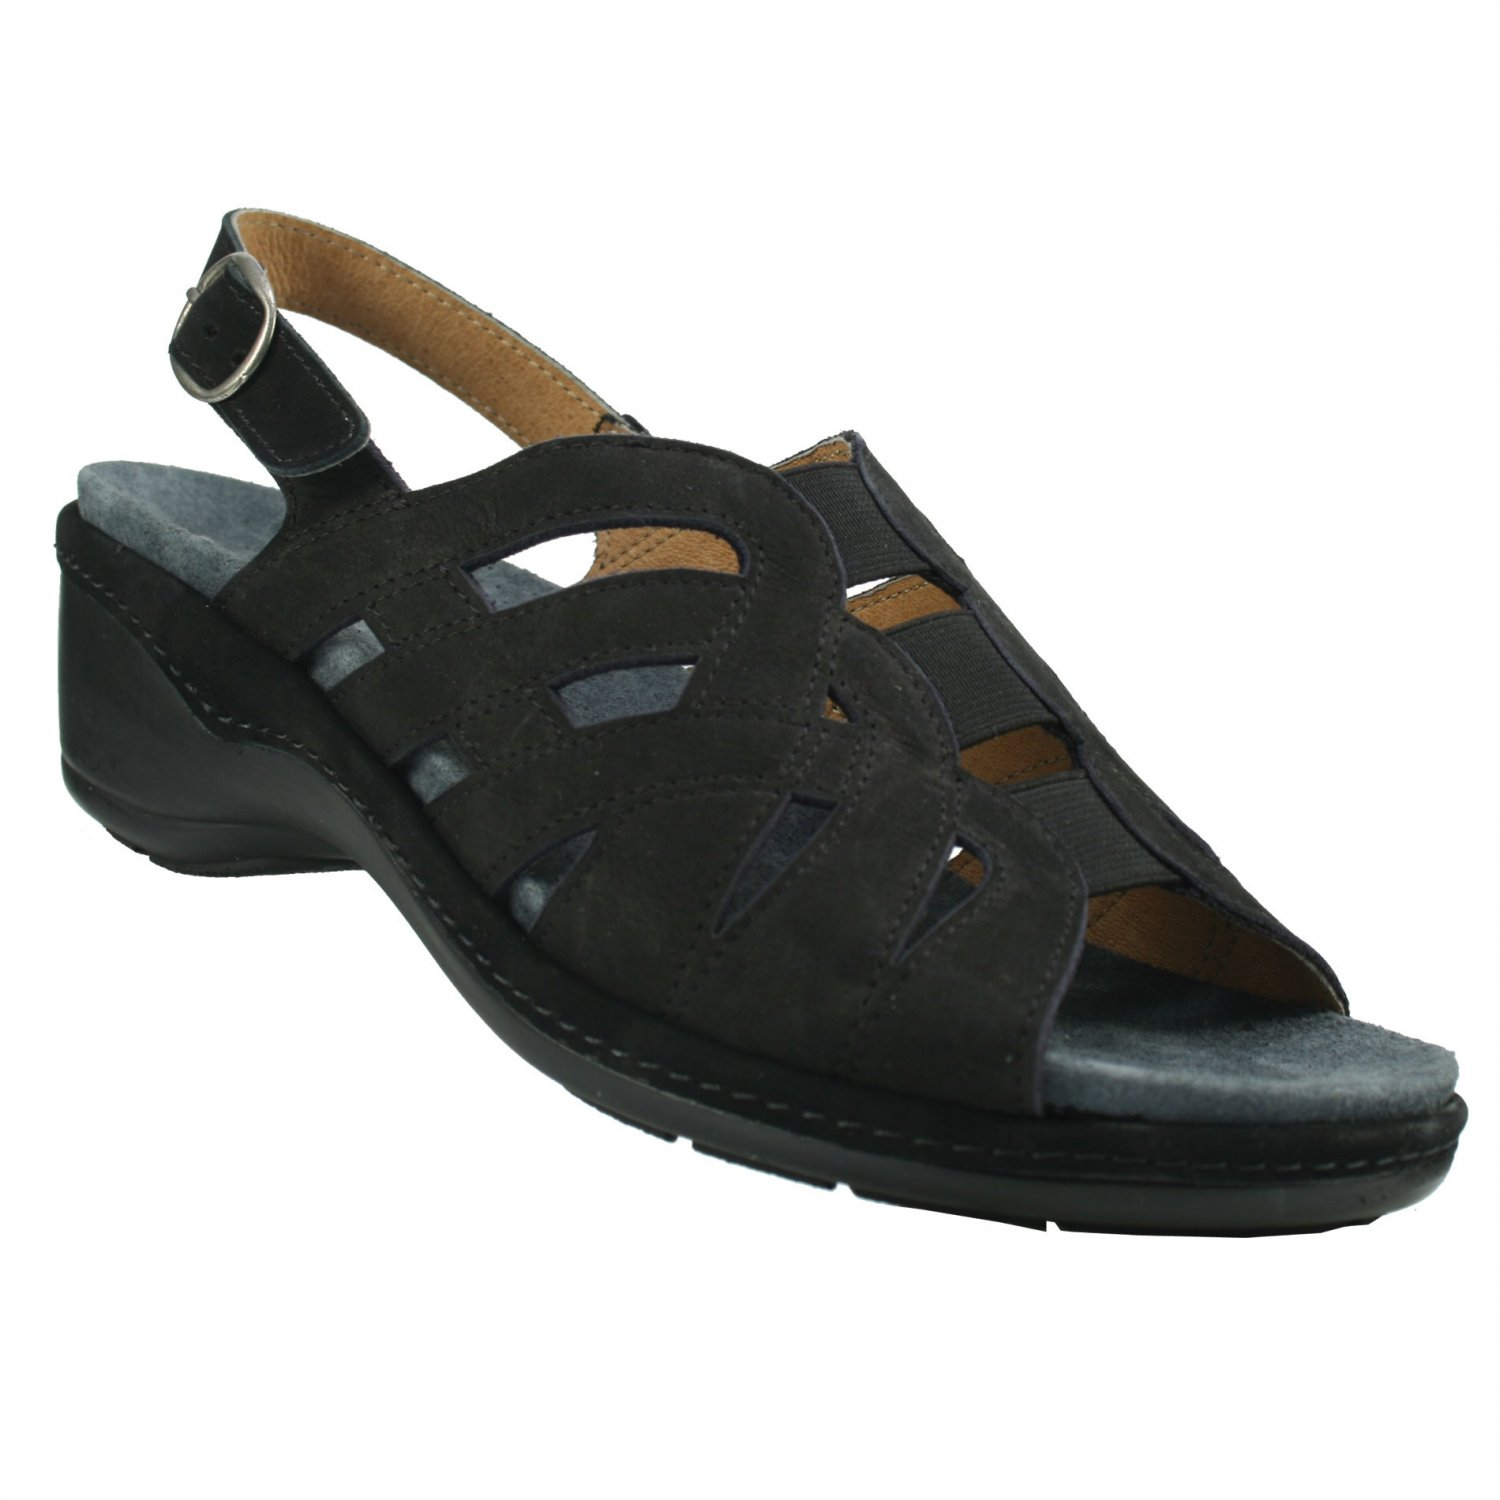 Spring Step KAYLANA Sandals Shoes All Sizes & Colors $